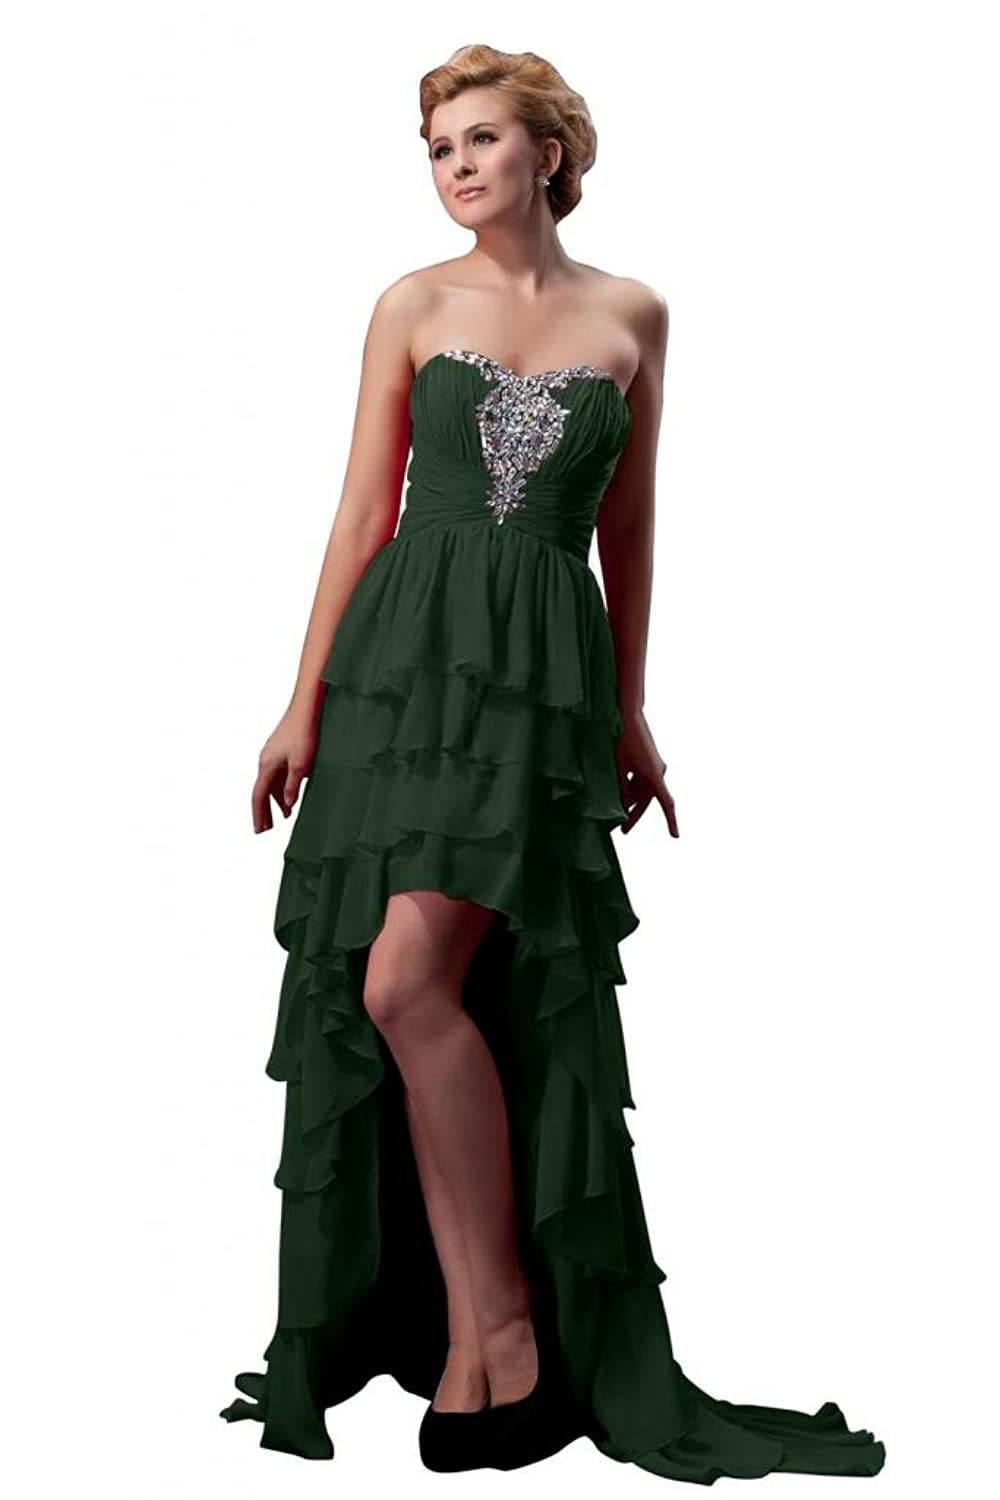 Sunvary Women's Hi-Lo Chiffon Party Gown Strapless Cocktail Dresses-8-Dark Green